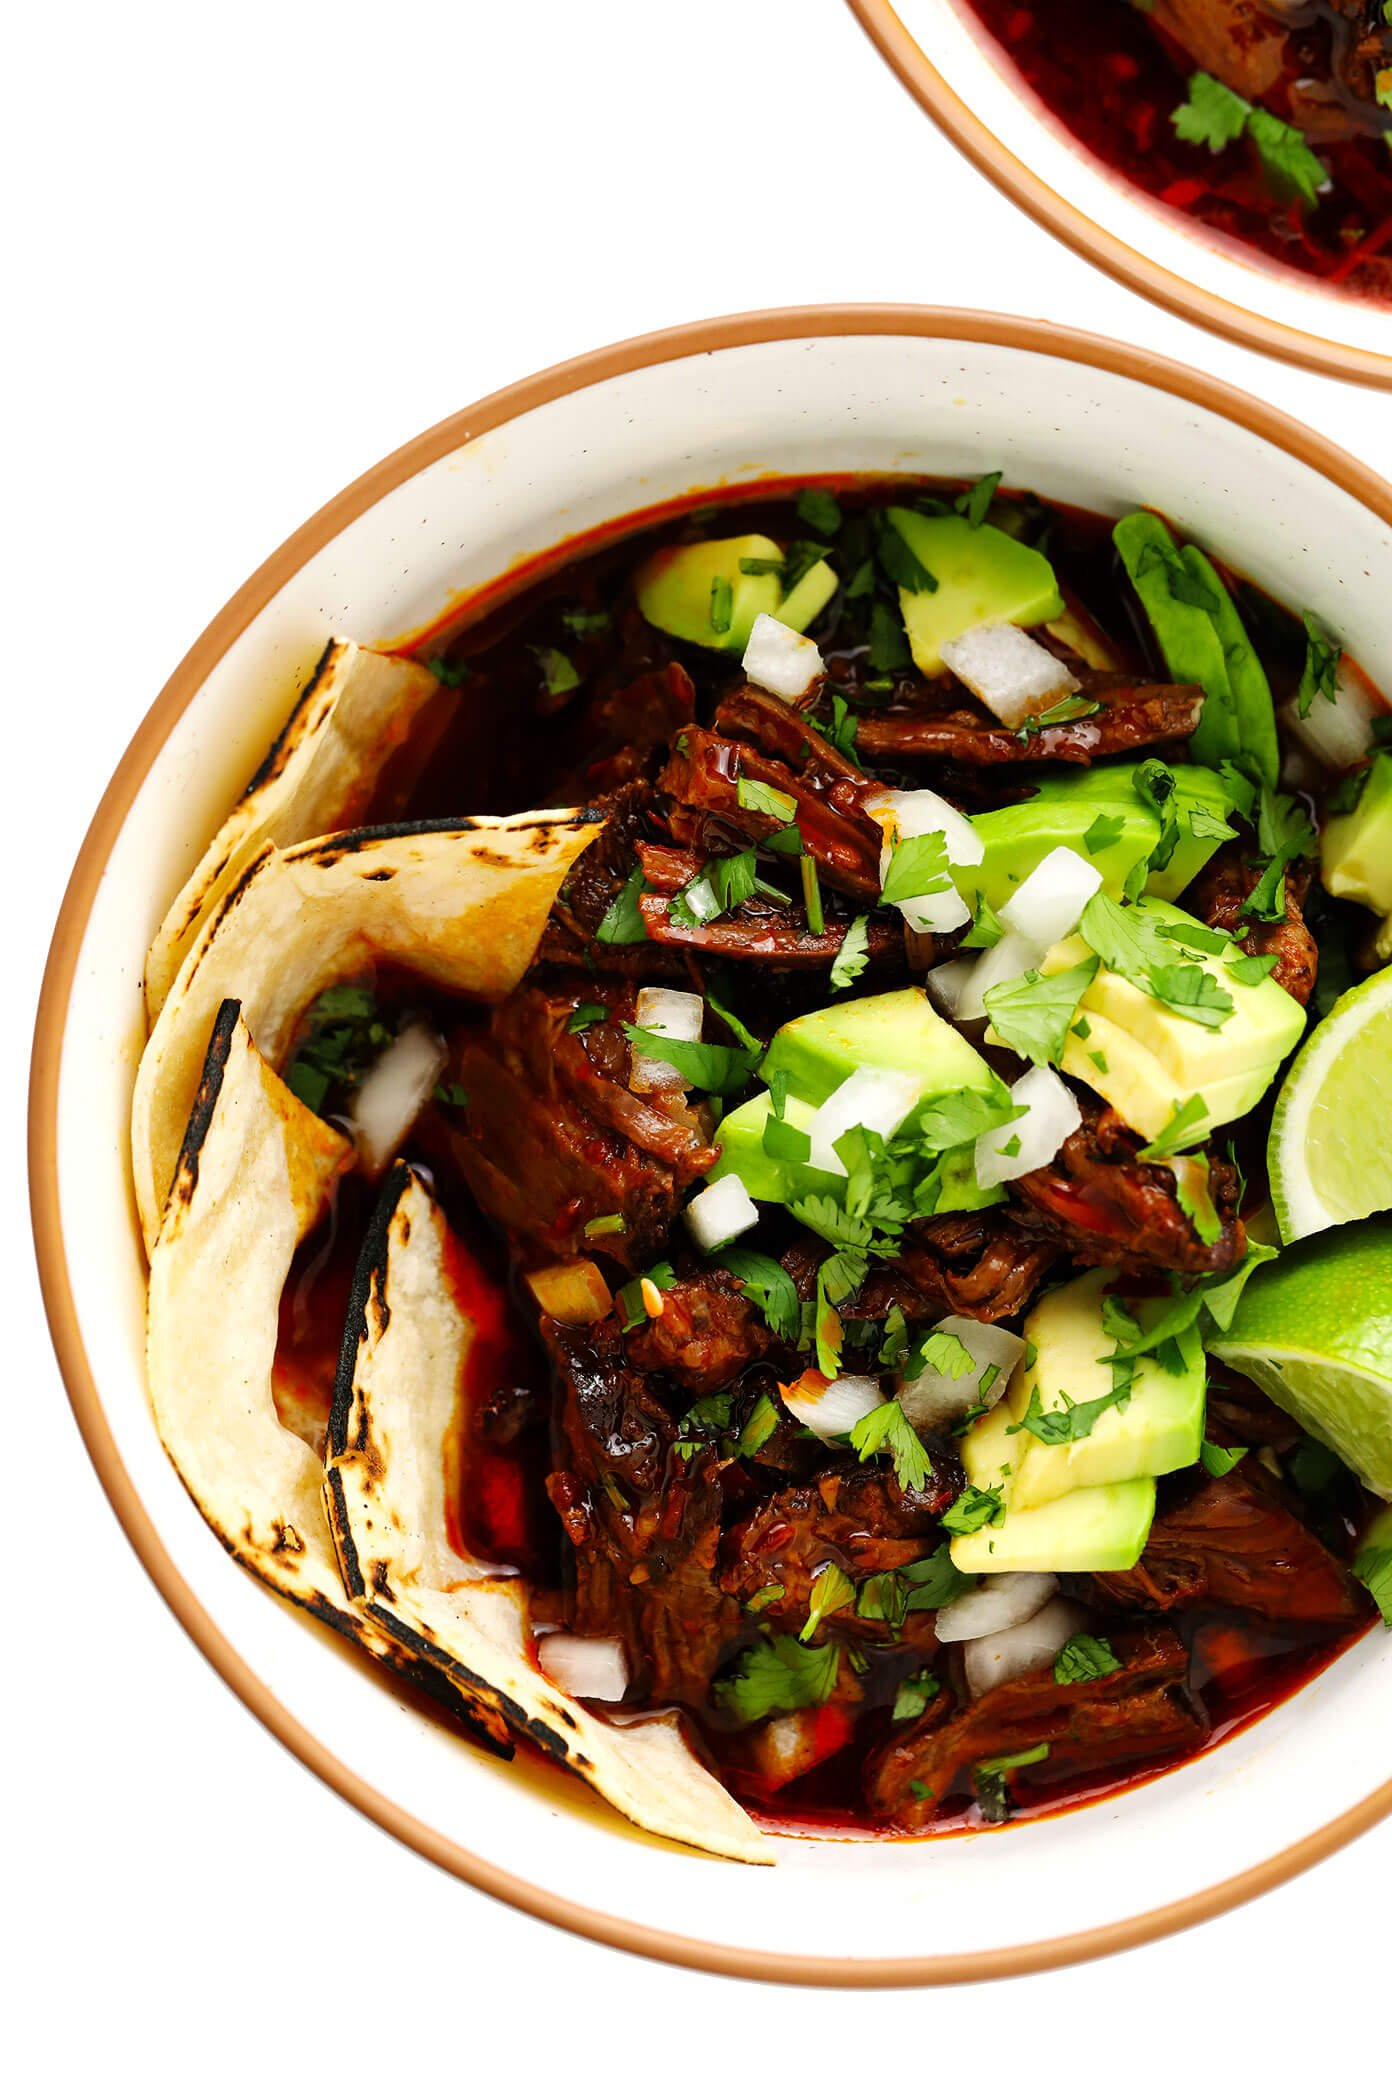 Birria Beef Stew in Bowls